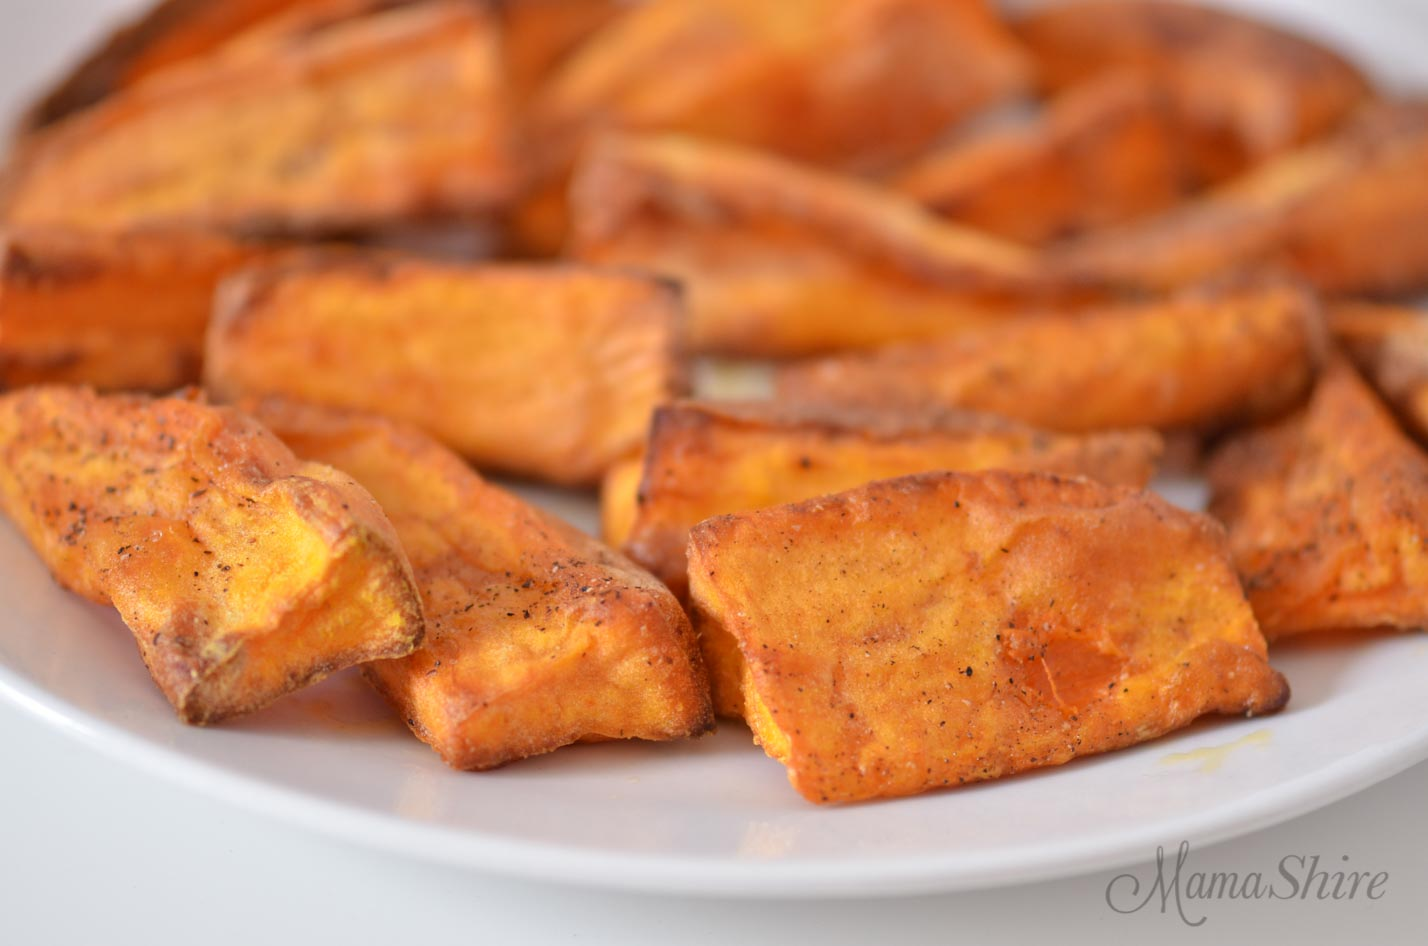 Air-fried Sweet Potato Fries - crispy on the outside, tender on the inside!